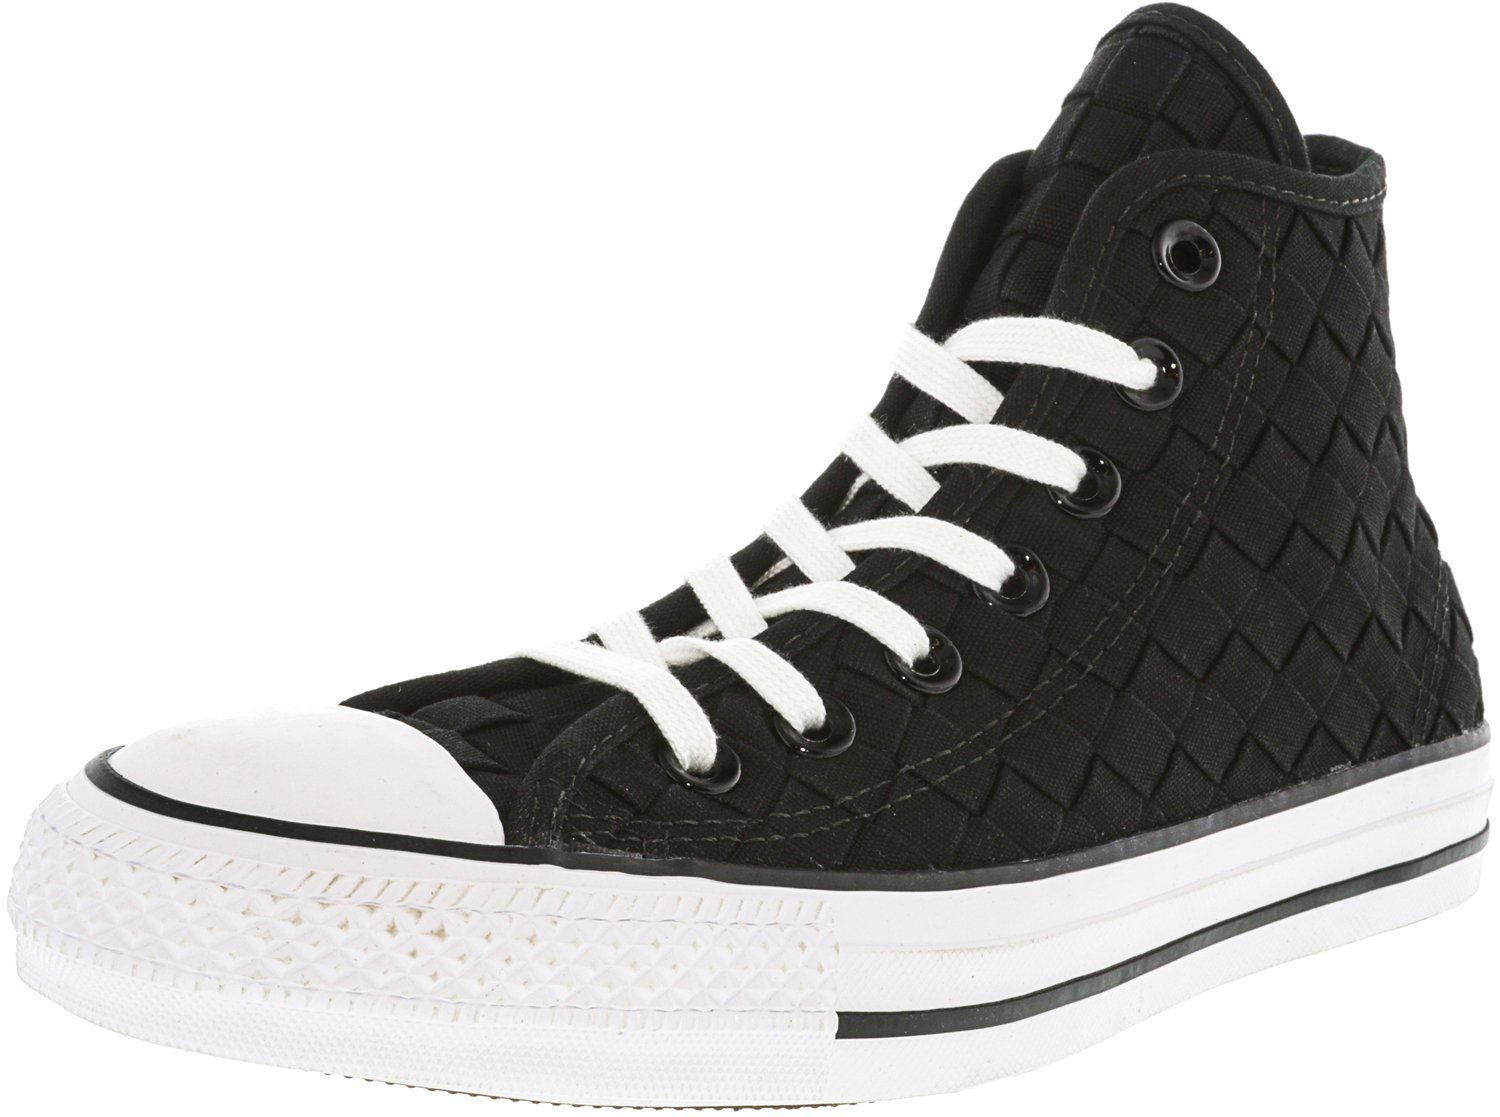 Converse Chuck Taylor All Star Core Hi B01F8GEMSG 6 M US Women / 4 M US Men|Black / Black